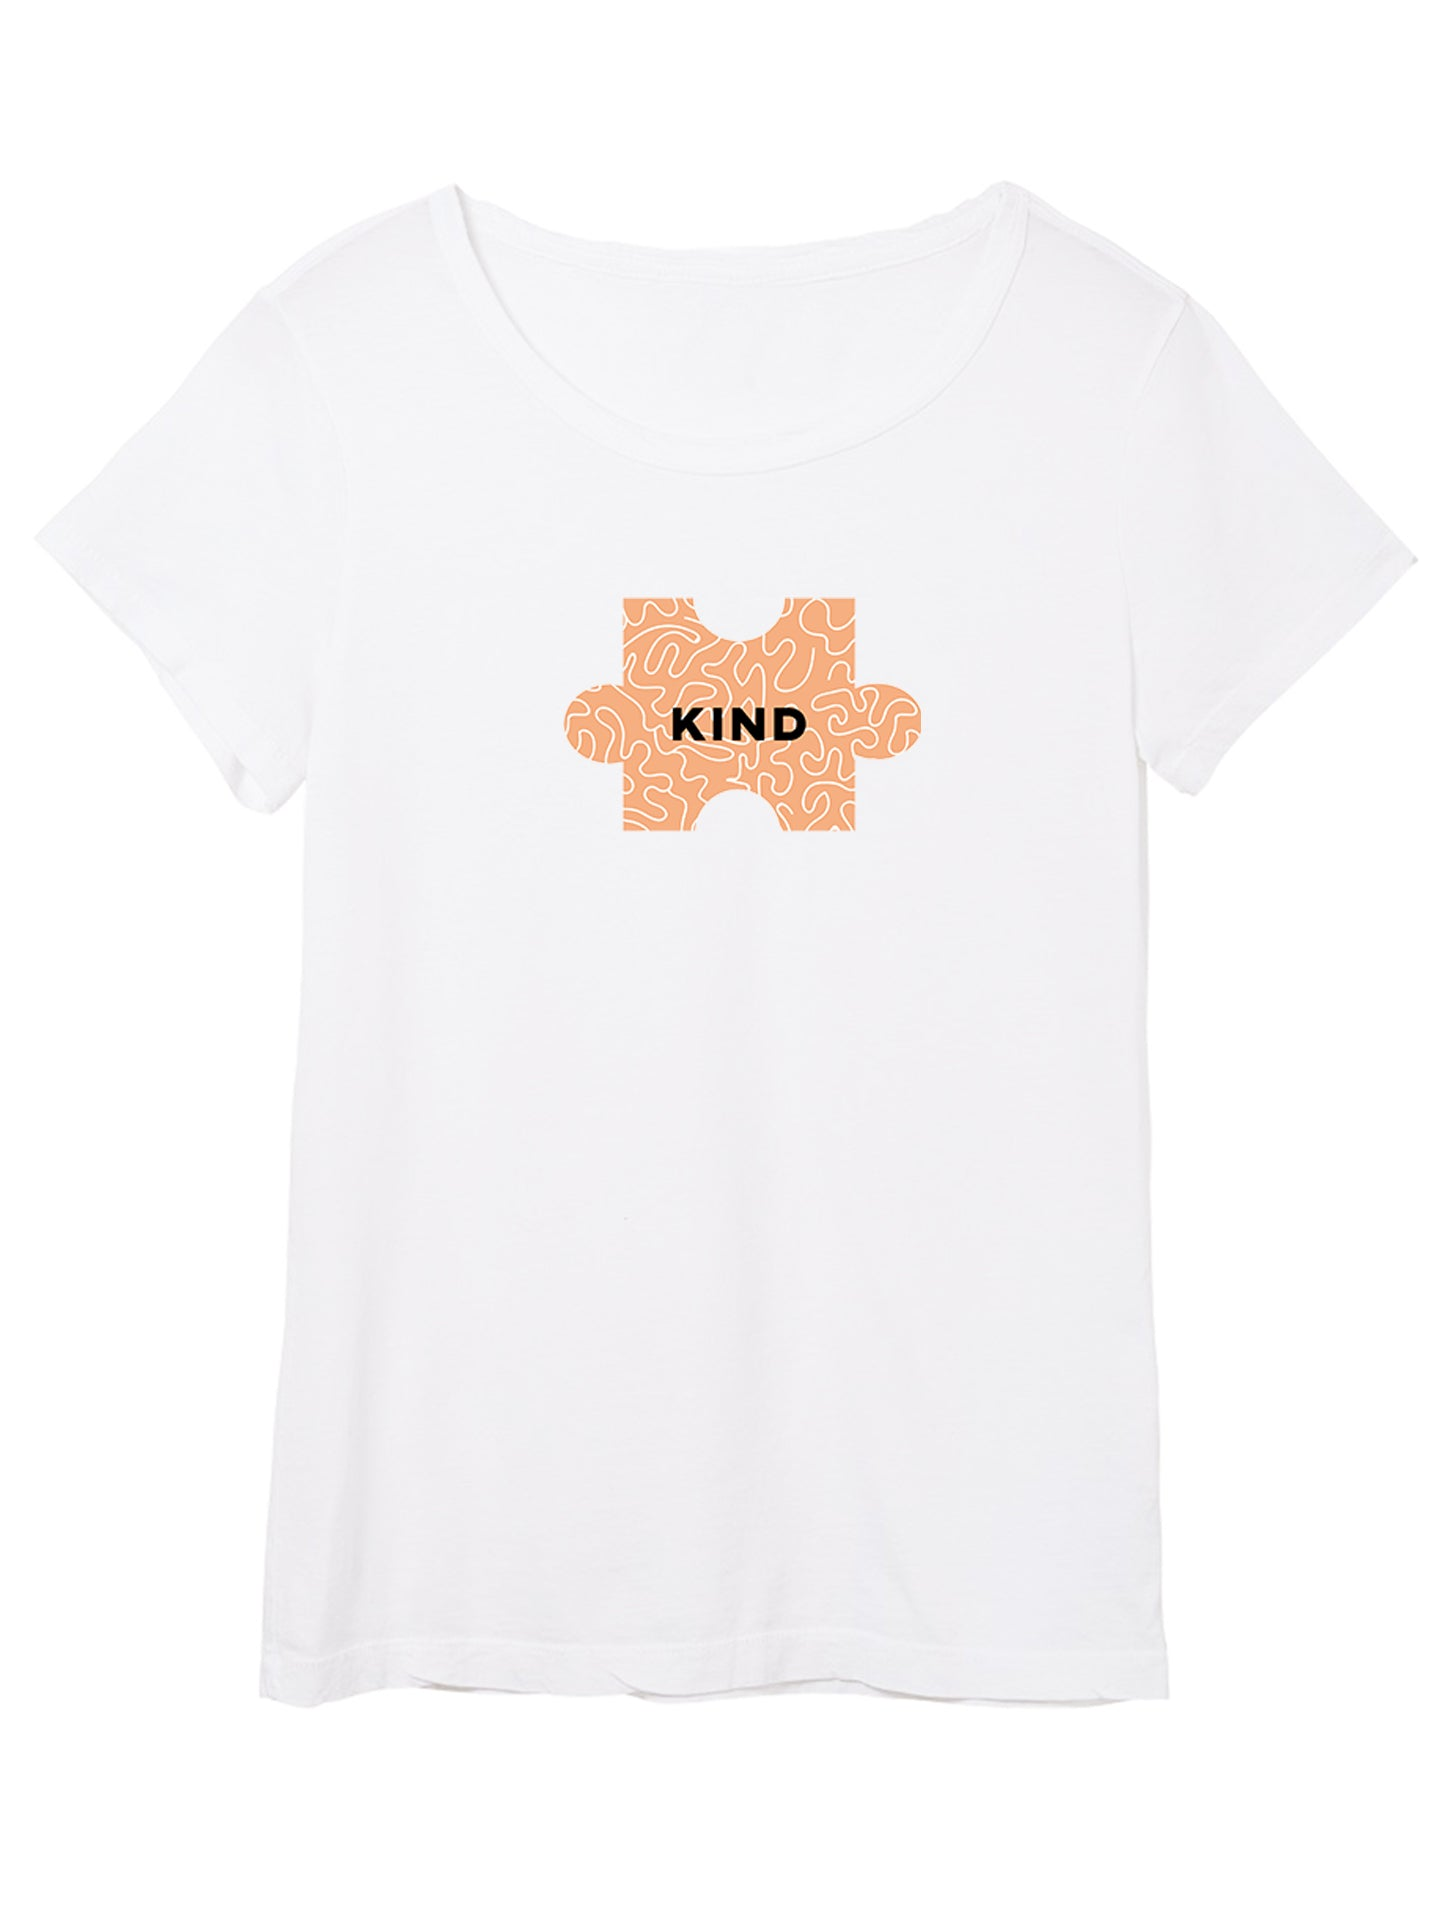 The Power of Words - Women's Tee - Puzzle Pieces- KIND